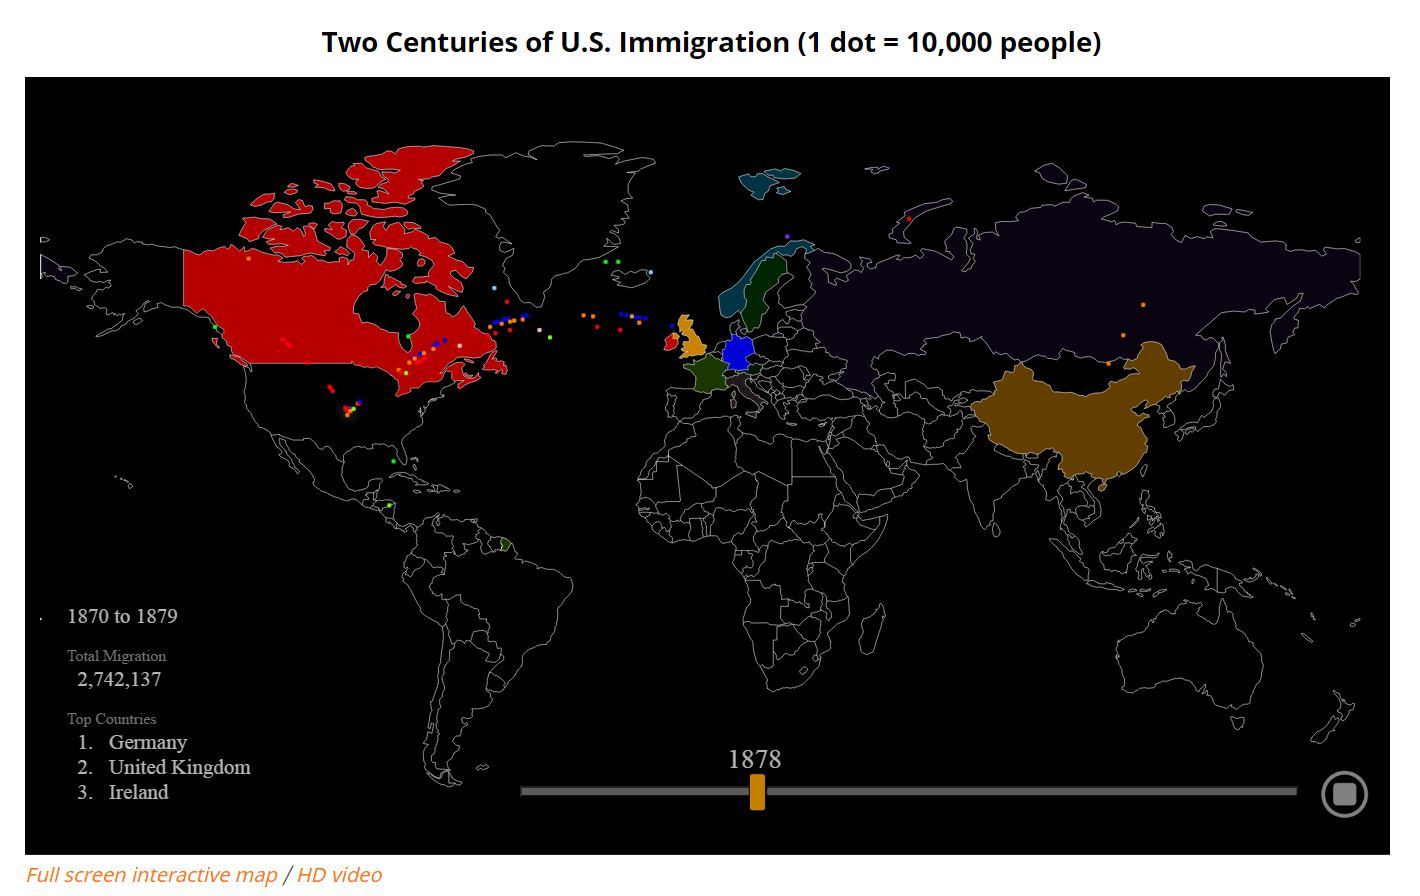 immigration_map.JPG